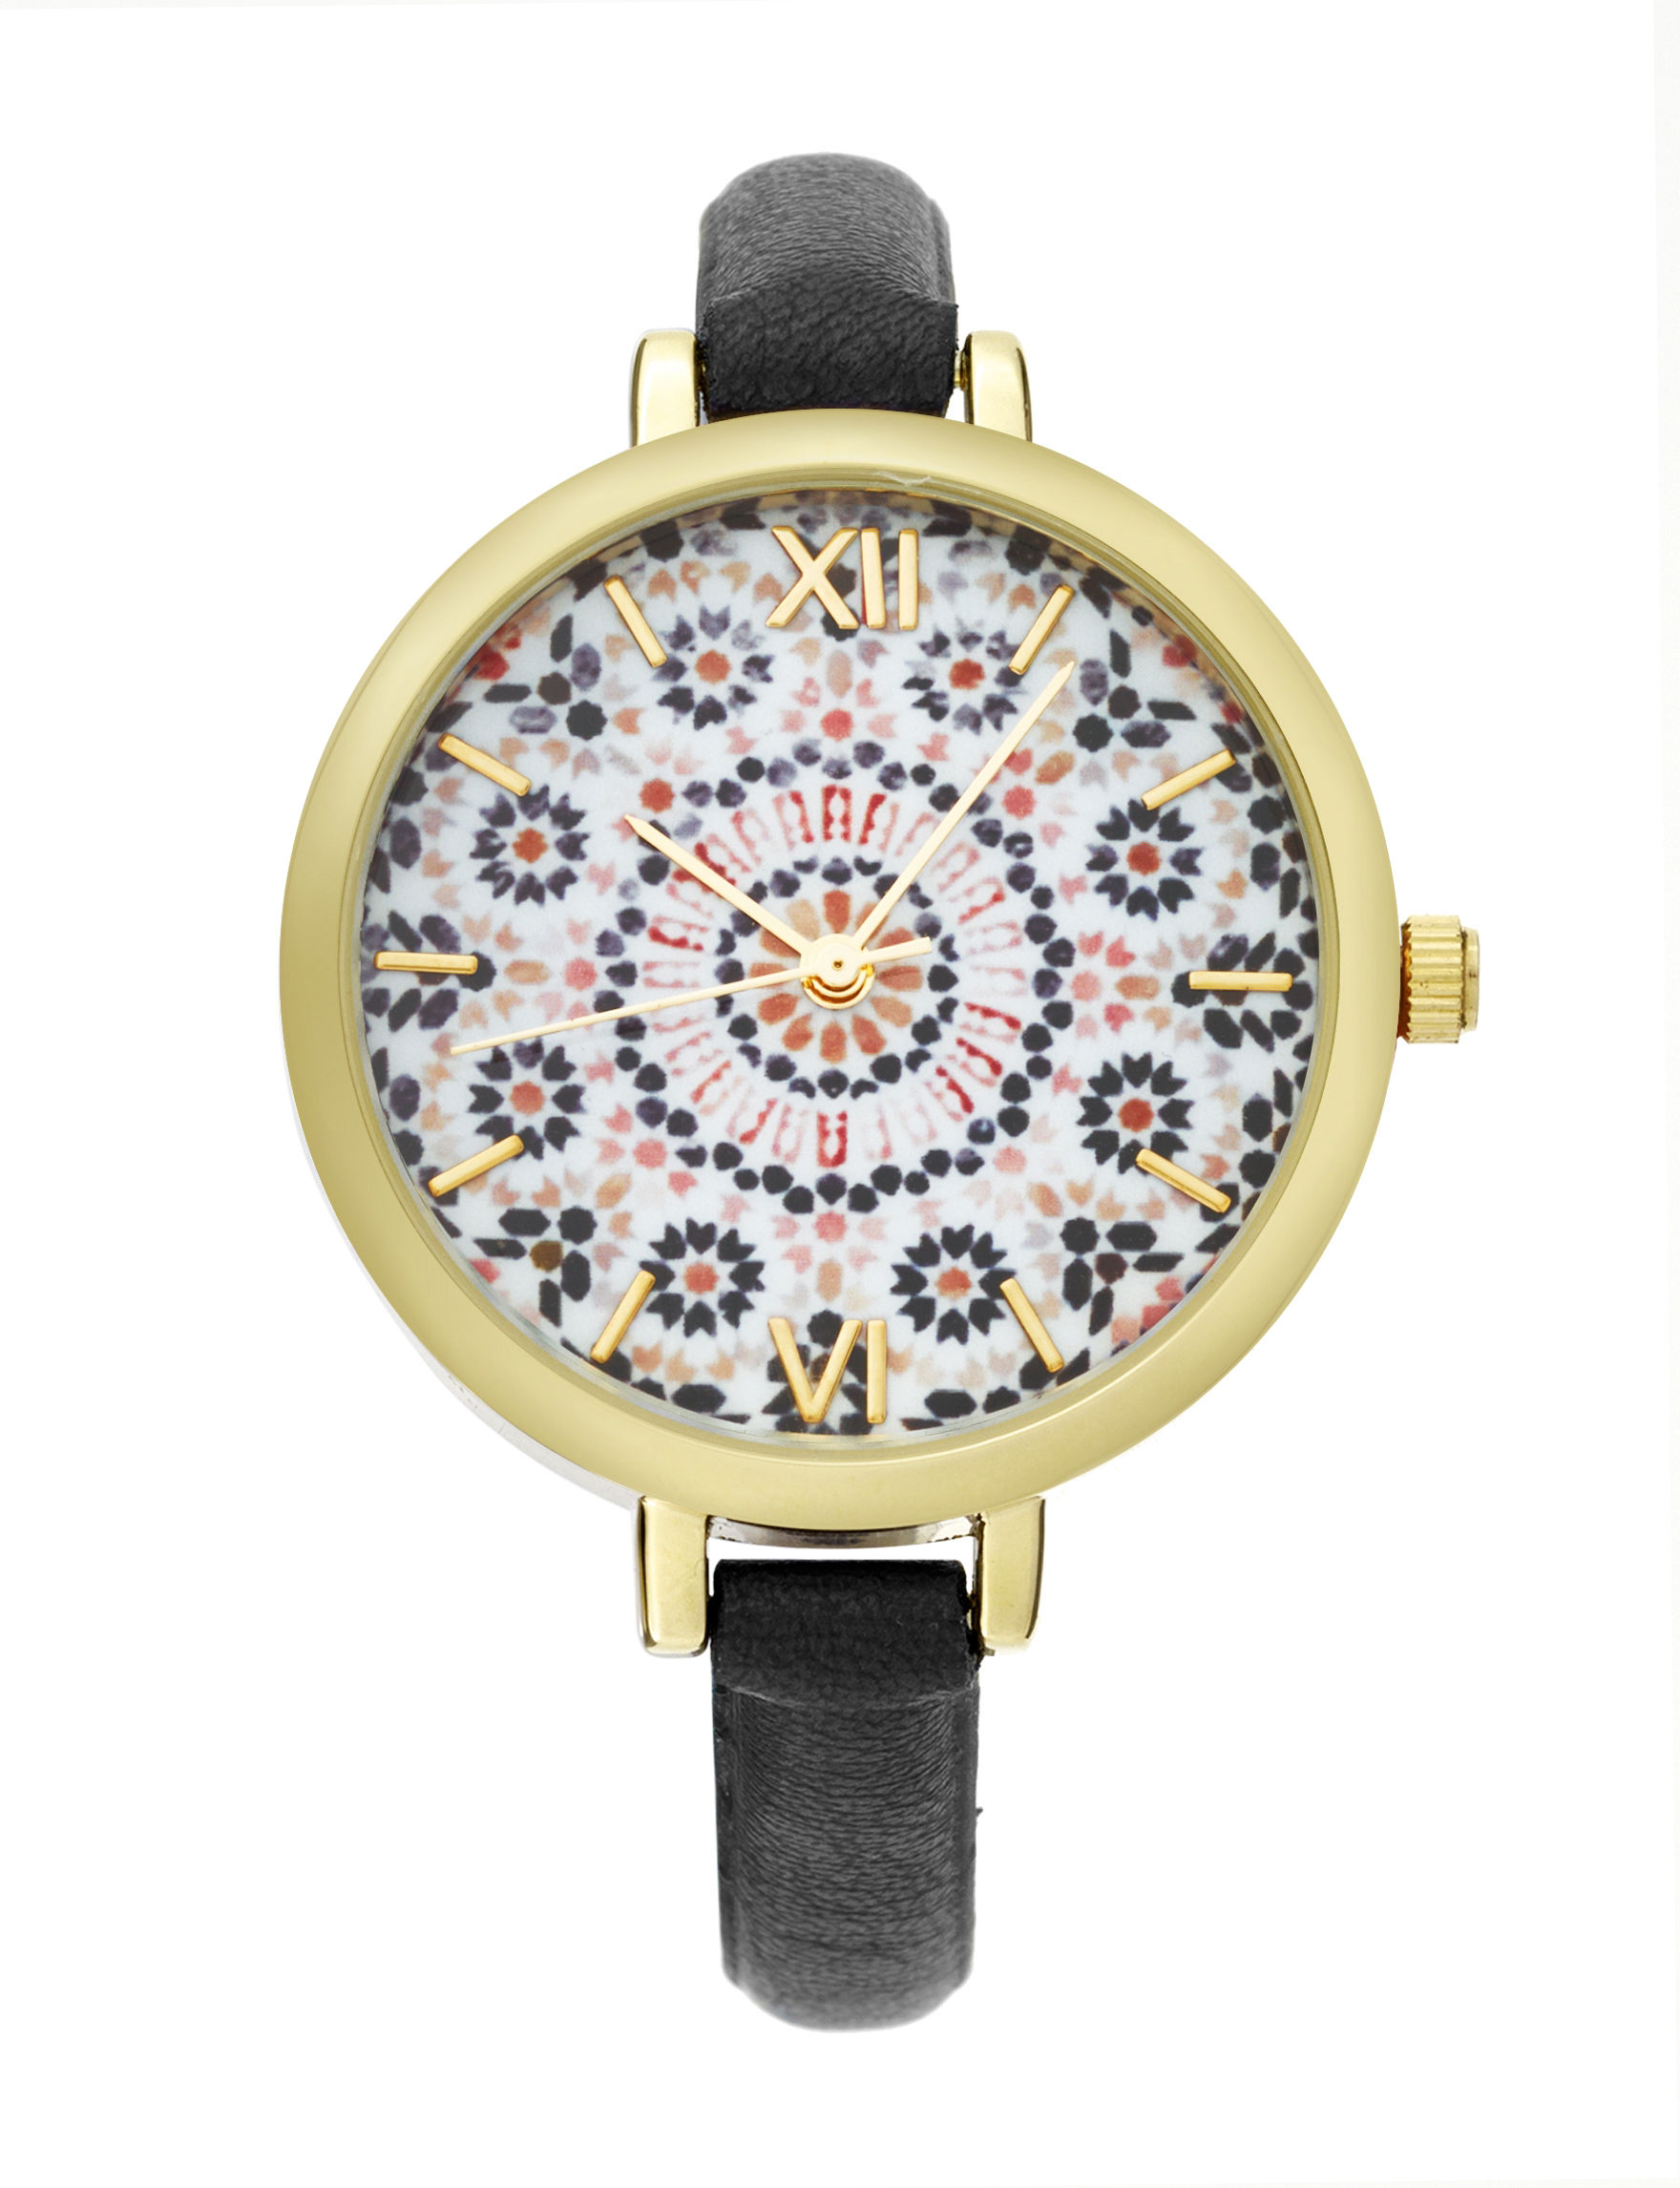 American Exchange Black Fashion Watches